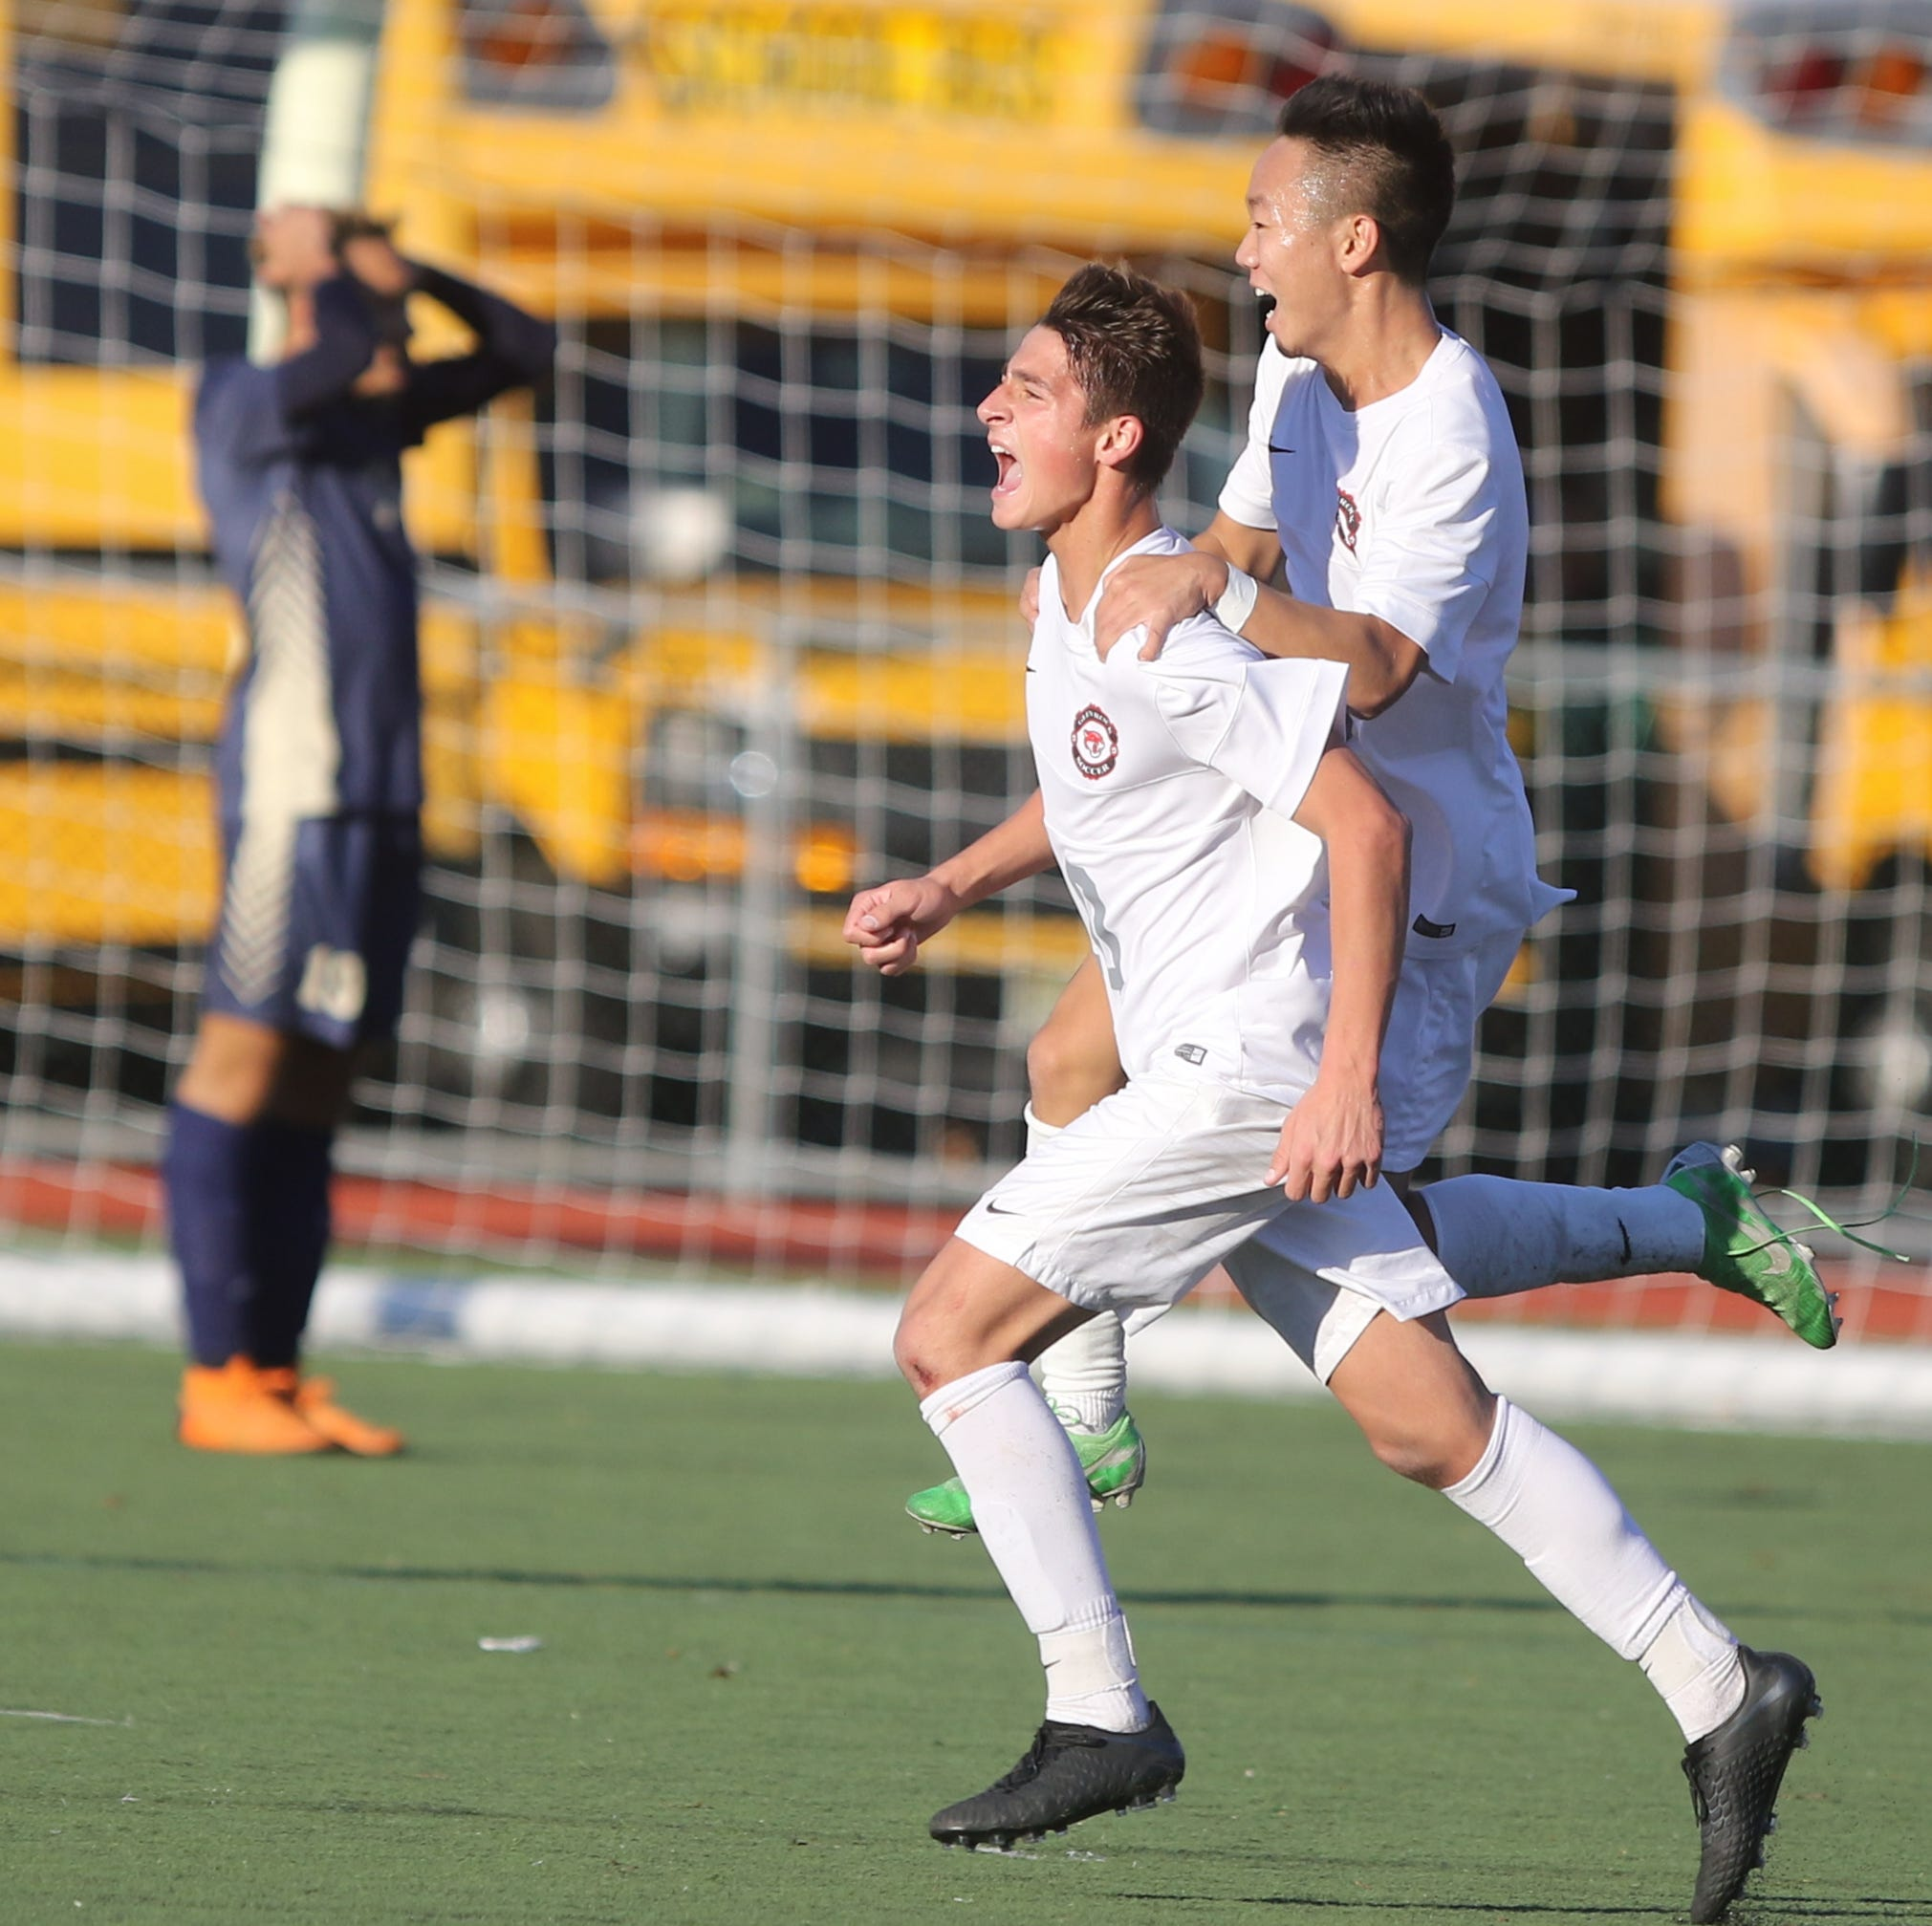 Glen Rock boys soccer dominates Hackettstown in Group 2 semifinals